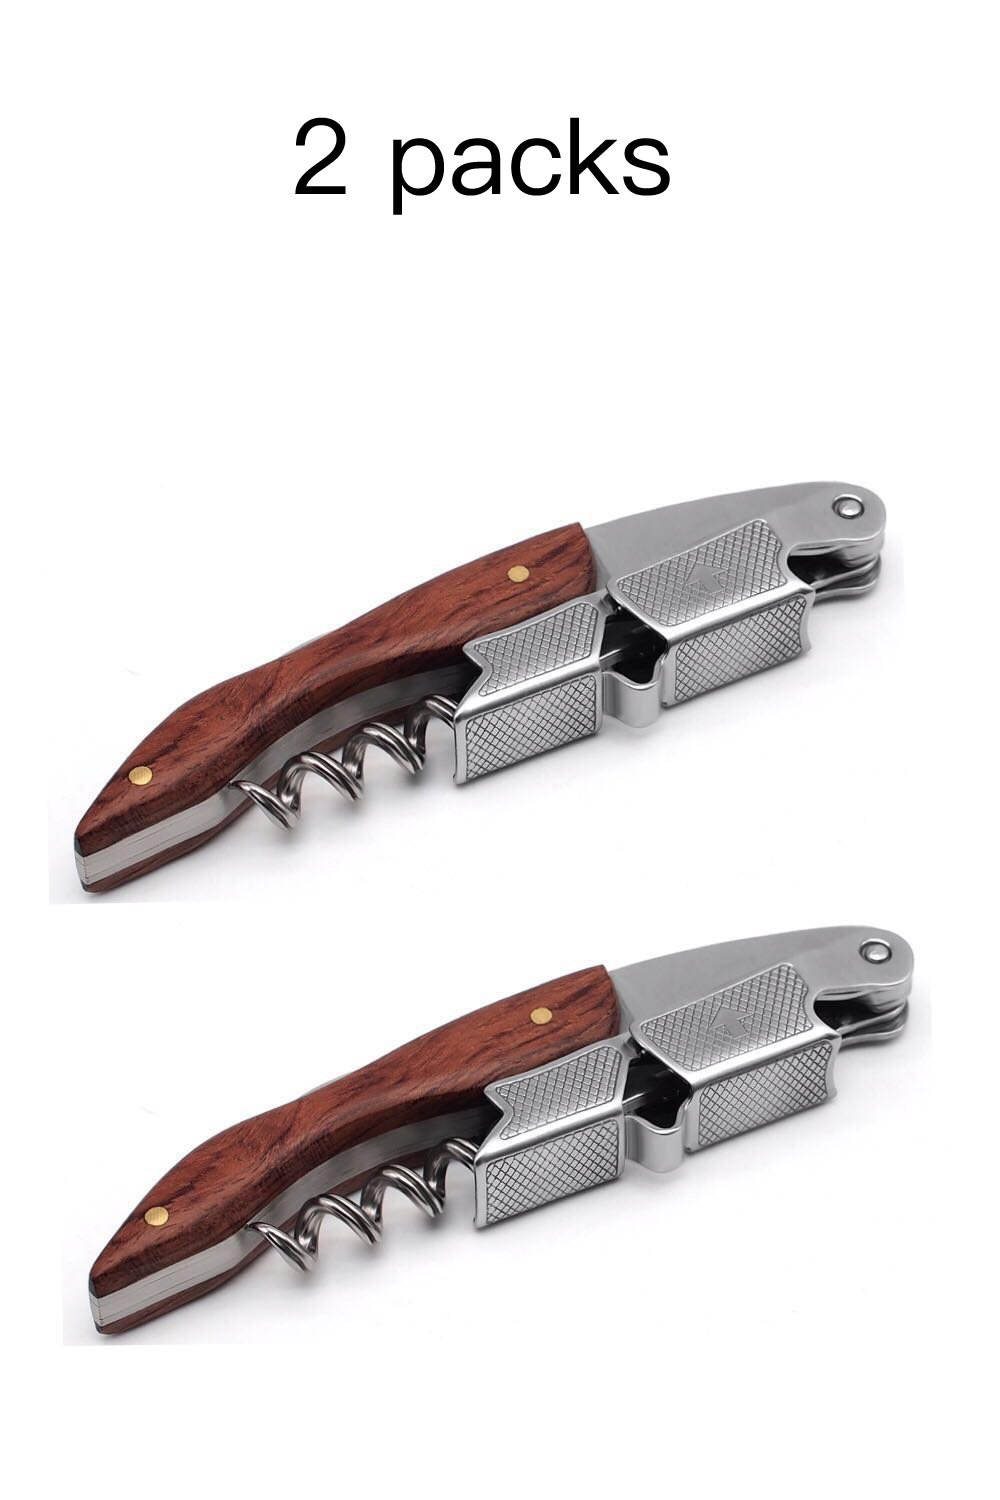 Freetor 3 in 1 Corkscrew – Professional Grade Natural Rosewood 3 in 1 Corkscrew,Bottle Opener and Foil Cutter, the Favoured Choice of Sommeliers,Waiters and Bartenders Around the World(2 PACK) by Freetor